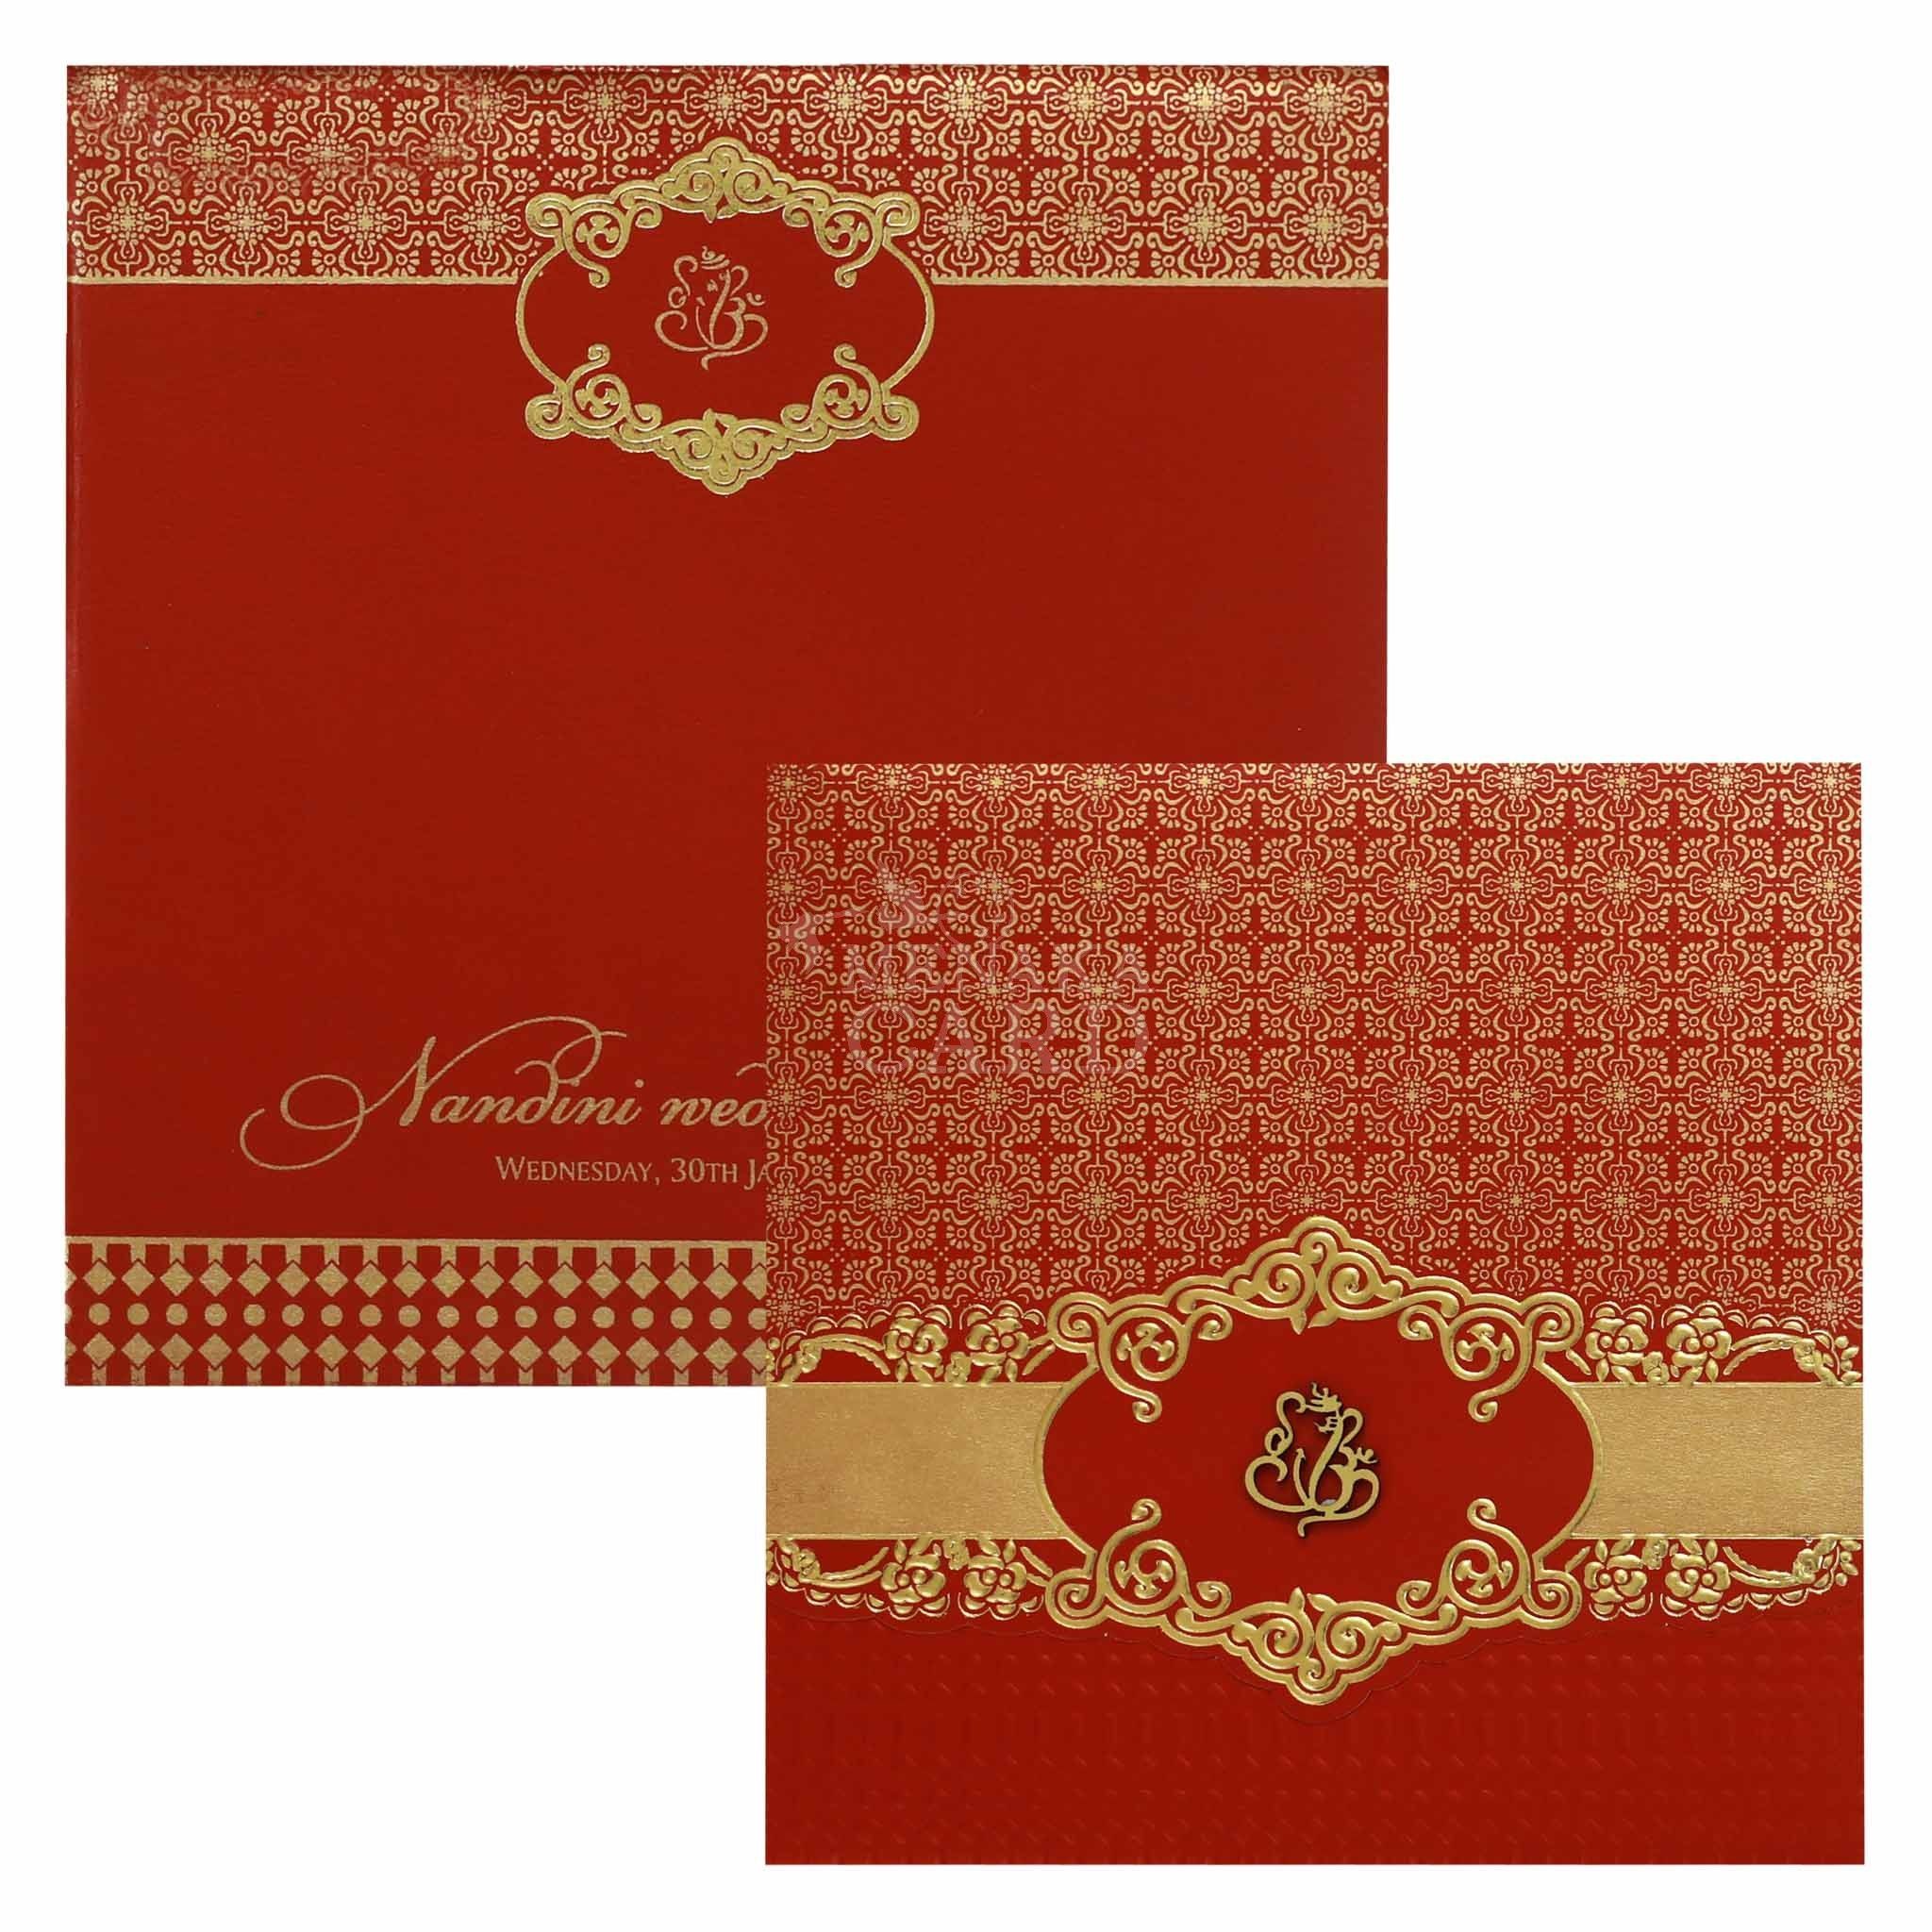 Visit also mss  in indian wedding invitations rh pinterest